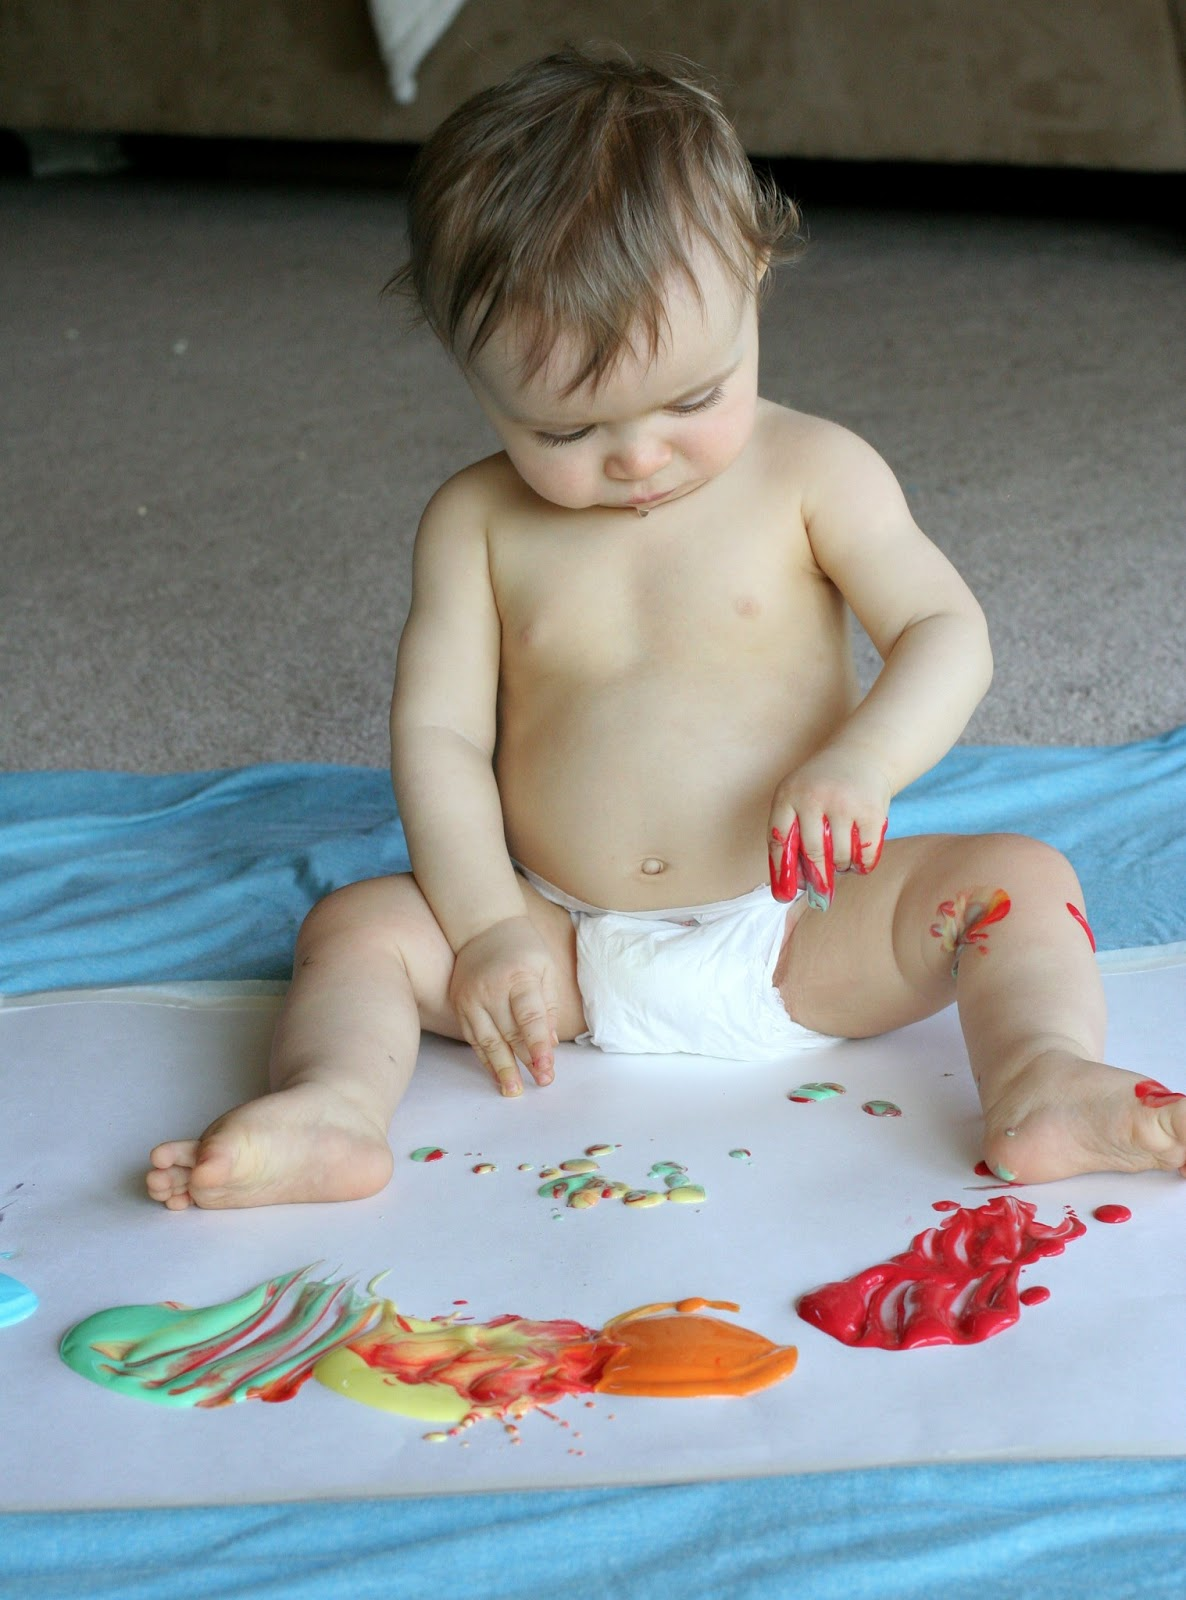 Colour activities babies - Scented Edible No Cook Fingerpaint Recipe For Babies And Toddlers From Fun At Home With